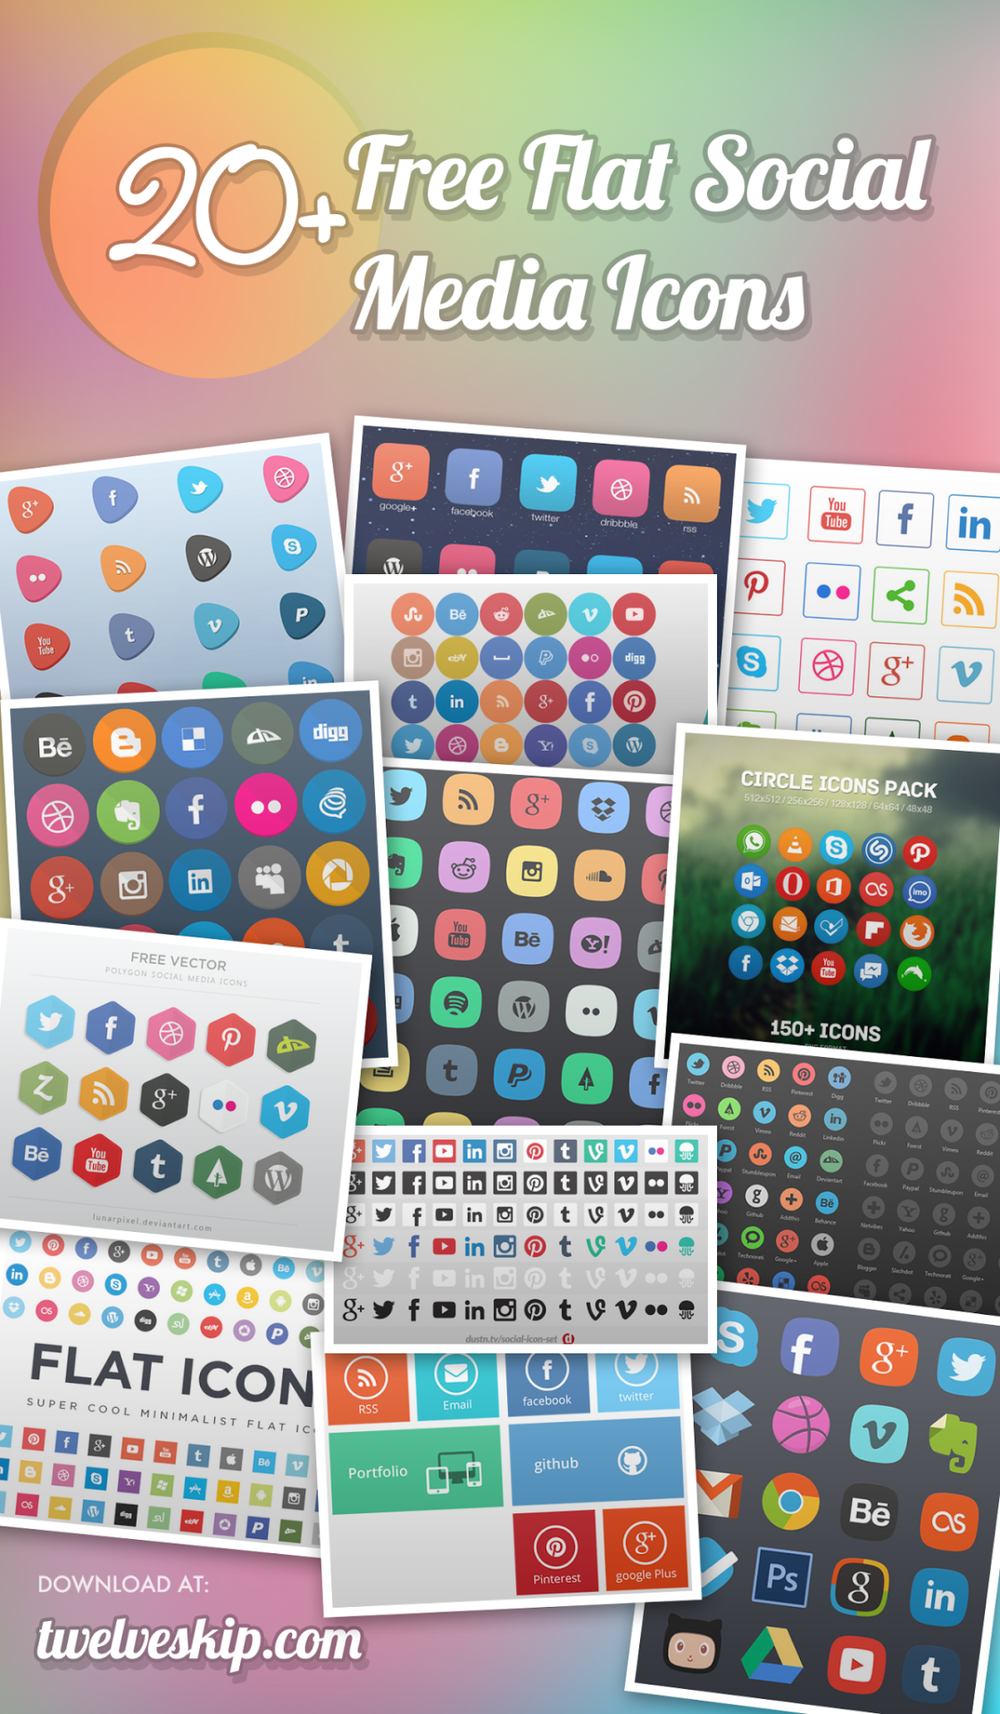 One can never have too many icons in their library, true? | #Design #iconspack ▼ Reshared Post From Pauline Cabrera ▼ 24 Beautifully Designed Flat Social Media Icon Sets [Updated] Looking for sleek social media icons you can use for your website/blog? Here's a huge collection of different flat icon sets you can download for free, get them now at: http://www.twelveskip.com/resources/icons/982/quality-sets-of-flat-social-media-icons _PS: Please refresh for the updated post!!_ http://click-to-read-mo.re/p/7u1X/53413f12